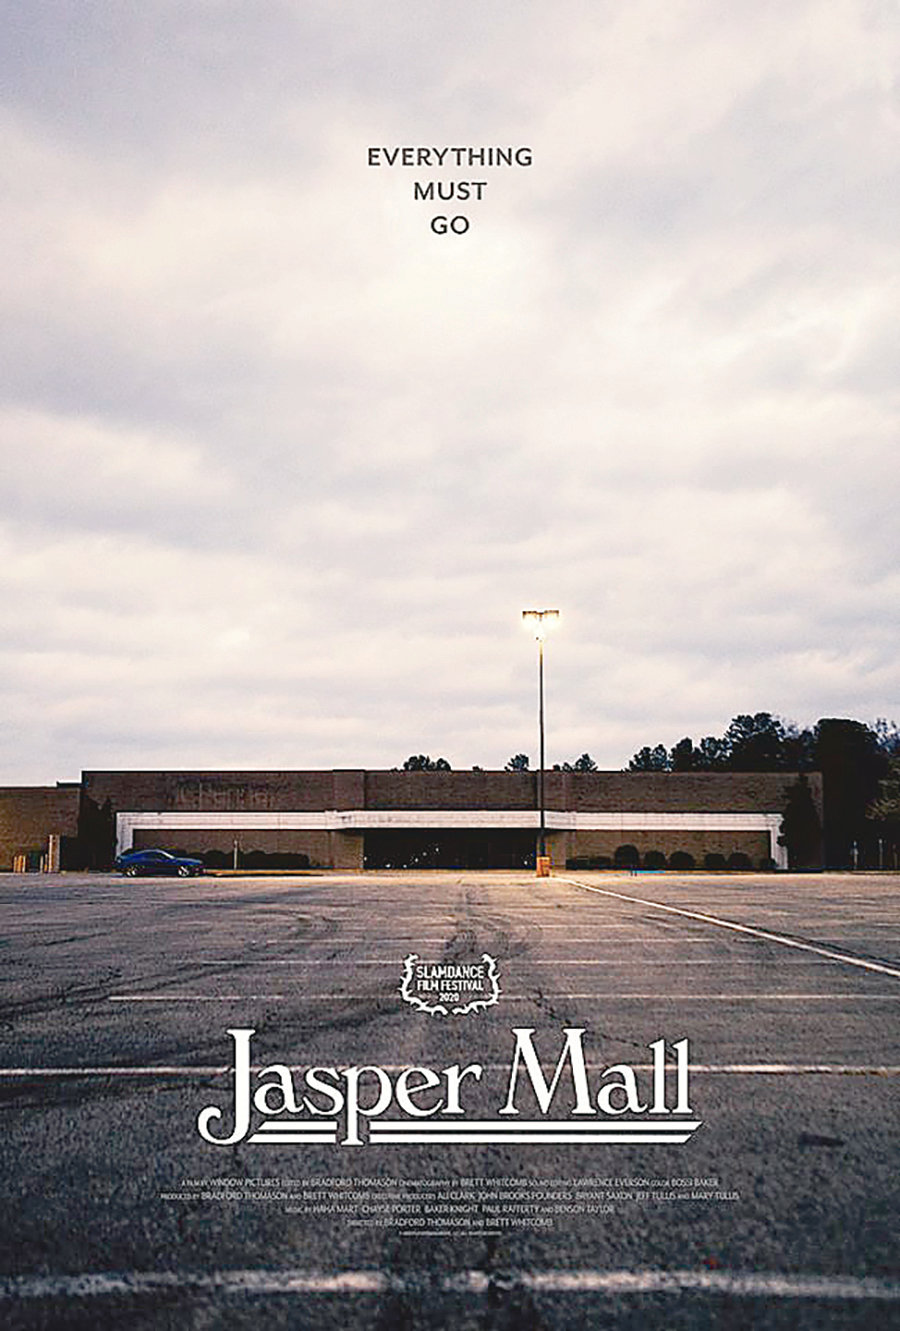 Documentary on Jasper Mall to be released Tuesday | Daily Mountain Eagle